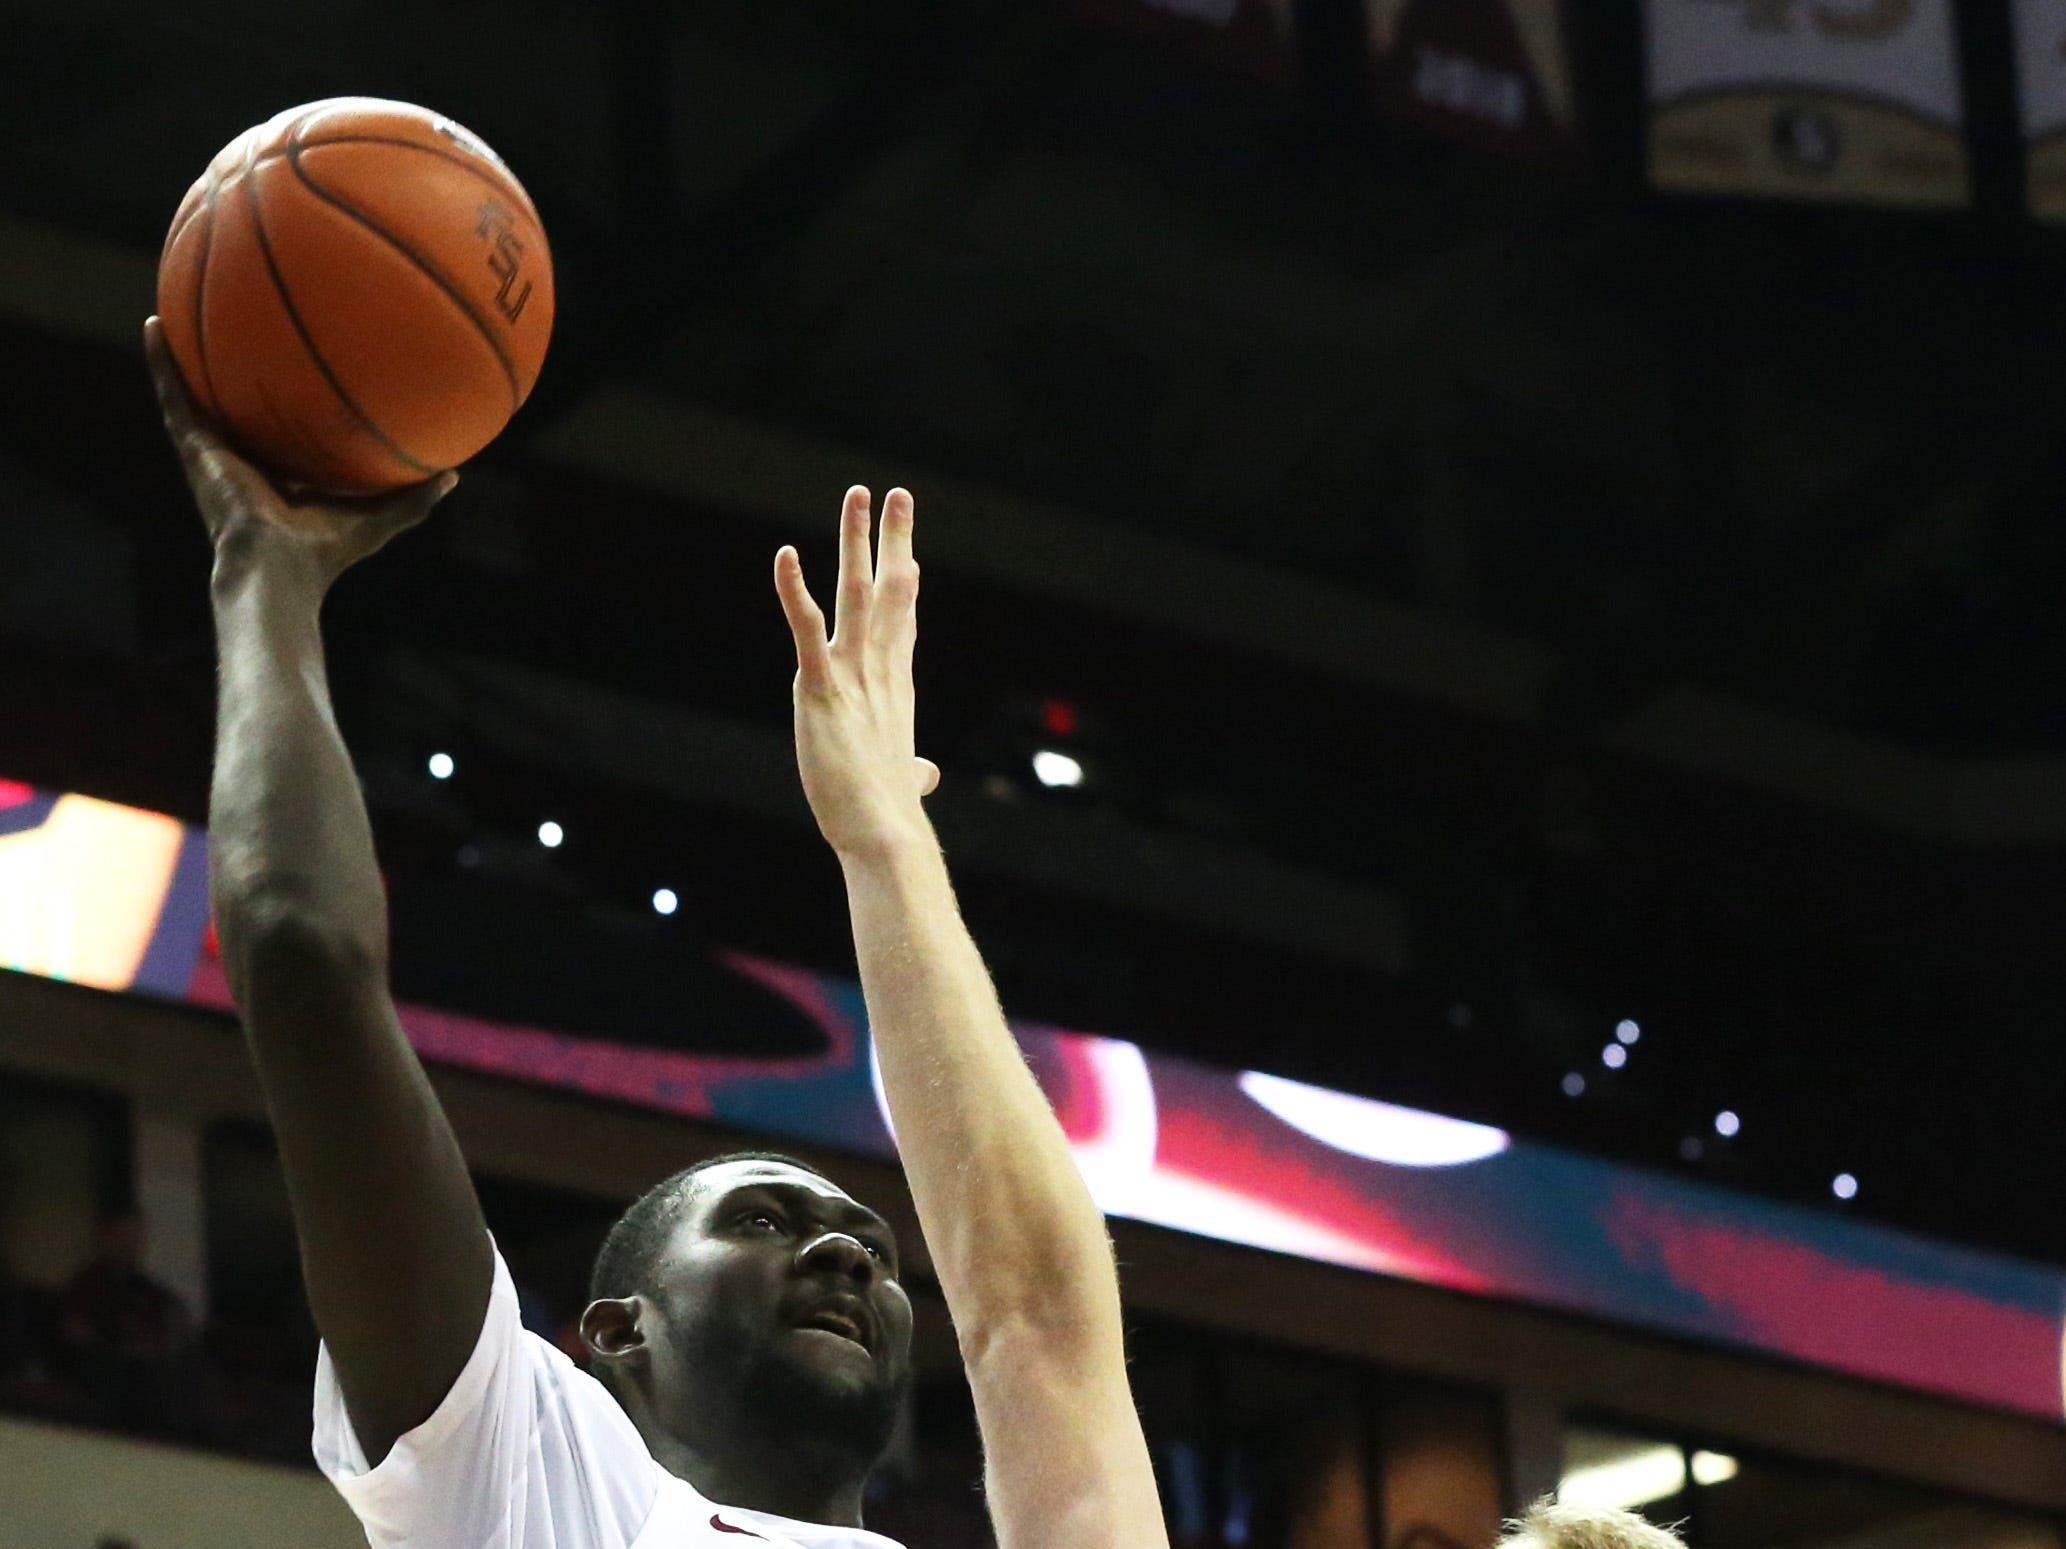 Florida State Seminoles center Christ Koumadje (21) sneaks in a shot over his defender, Canisius Golden Griffins forward Scott Hitchon (21) as the Florida State Seminoles host the Canisius Golden Griffins for basketball in the Tucker Civic Center, Monday, Nov. 19, 2018.